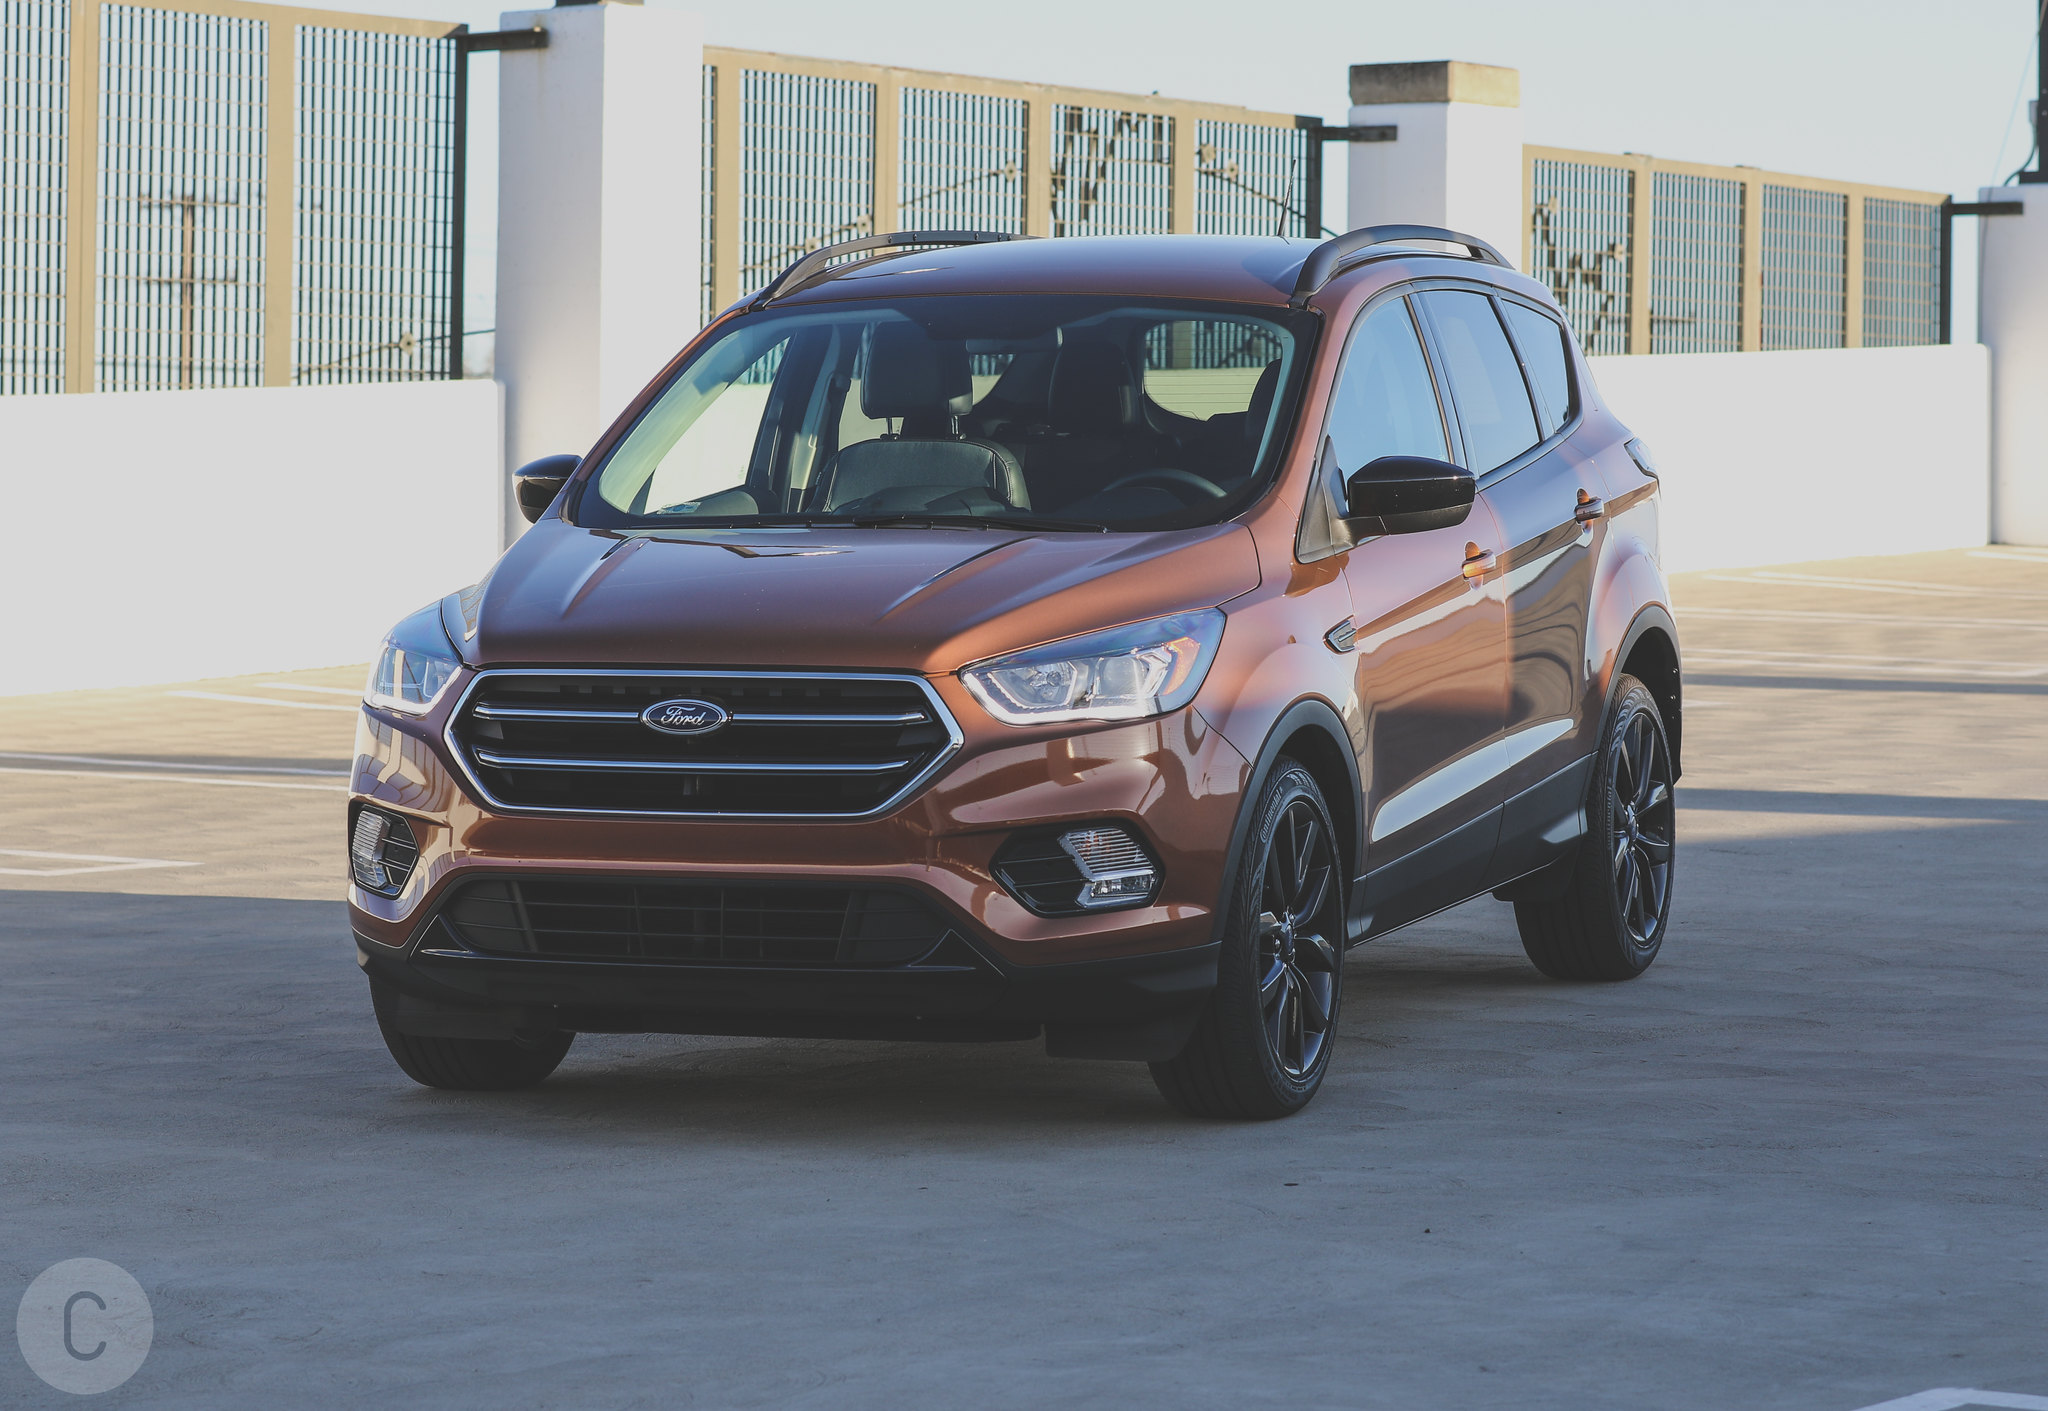 2017 Ford Escape is in the CF Garage